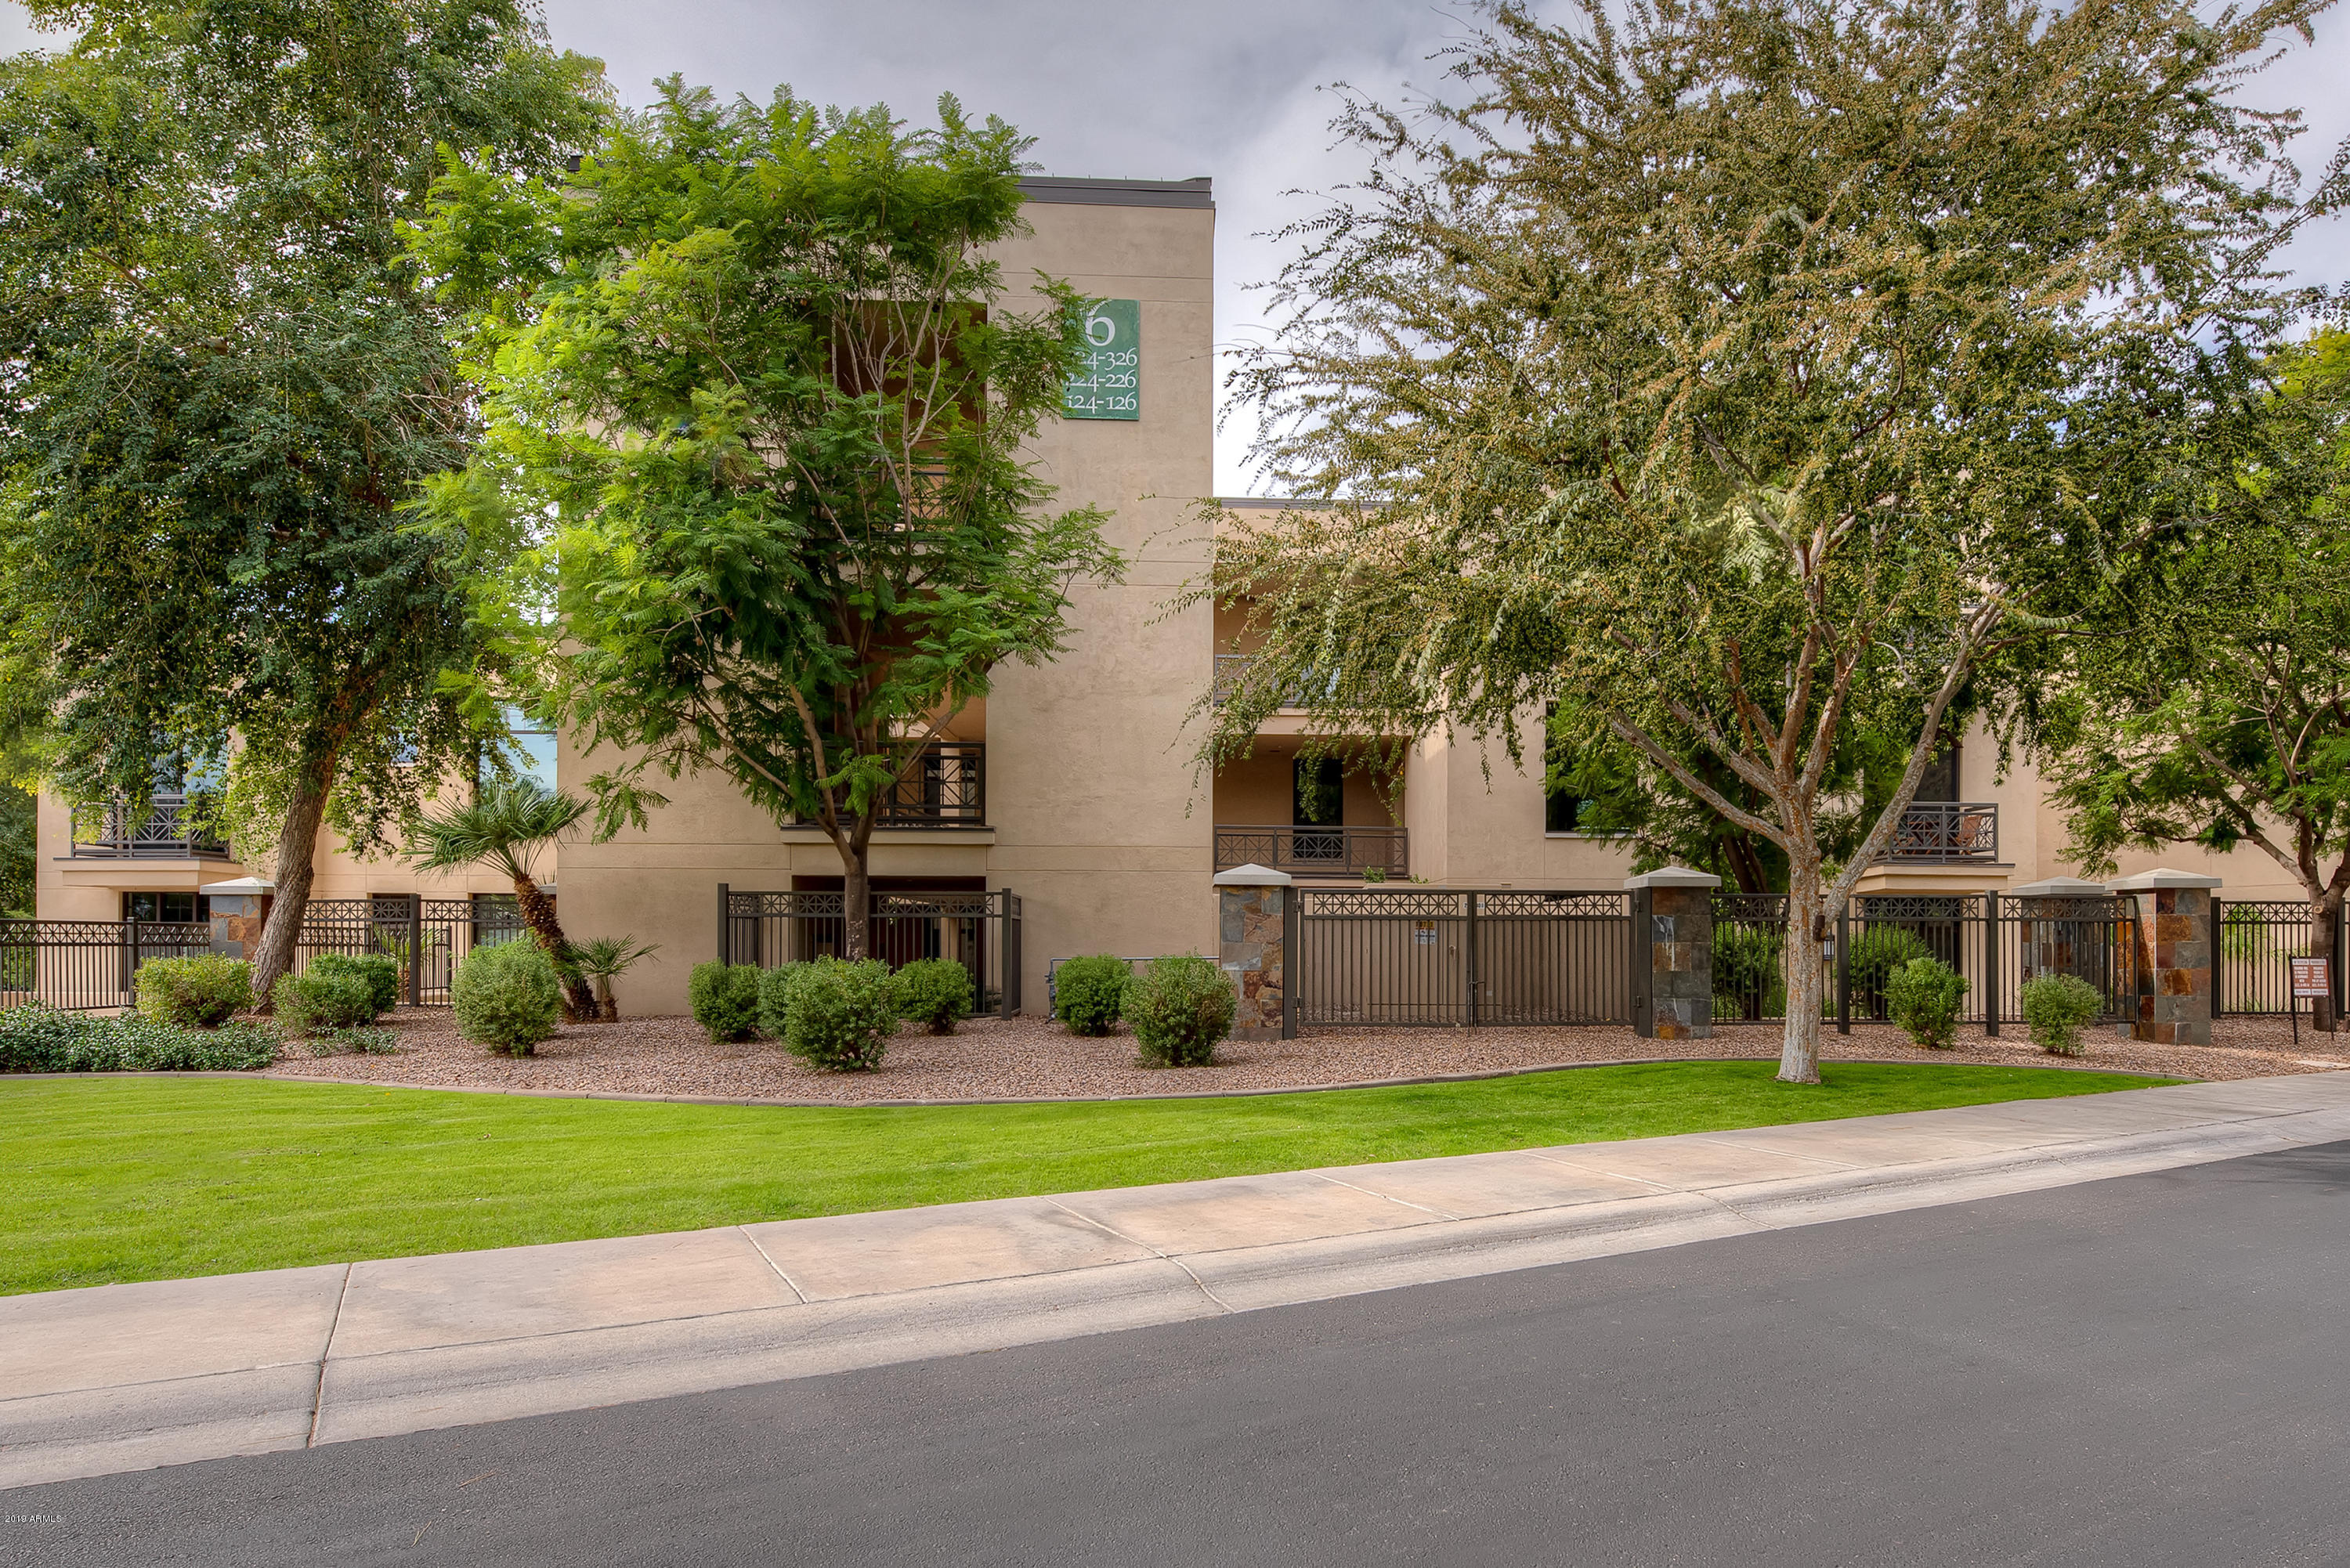 8 Biltmore Estate, Unit 324, Phoenix AZ 85016 - Photo 1